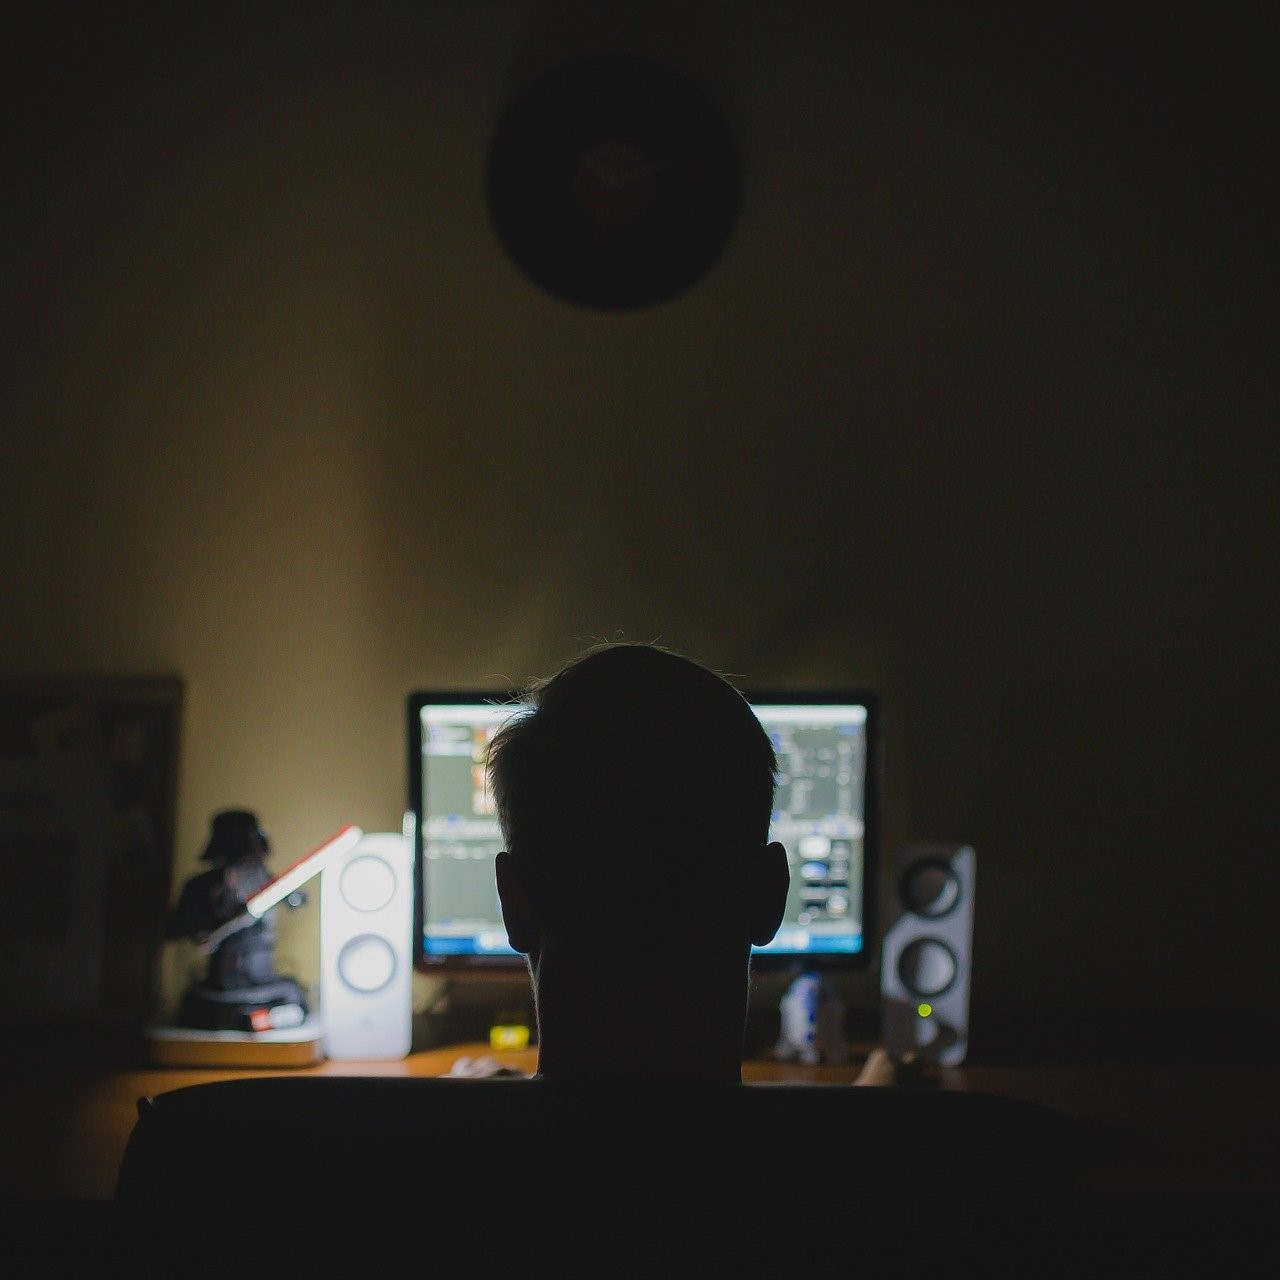 Working from home has increased UK working hours, but at what cost?